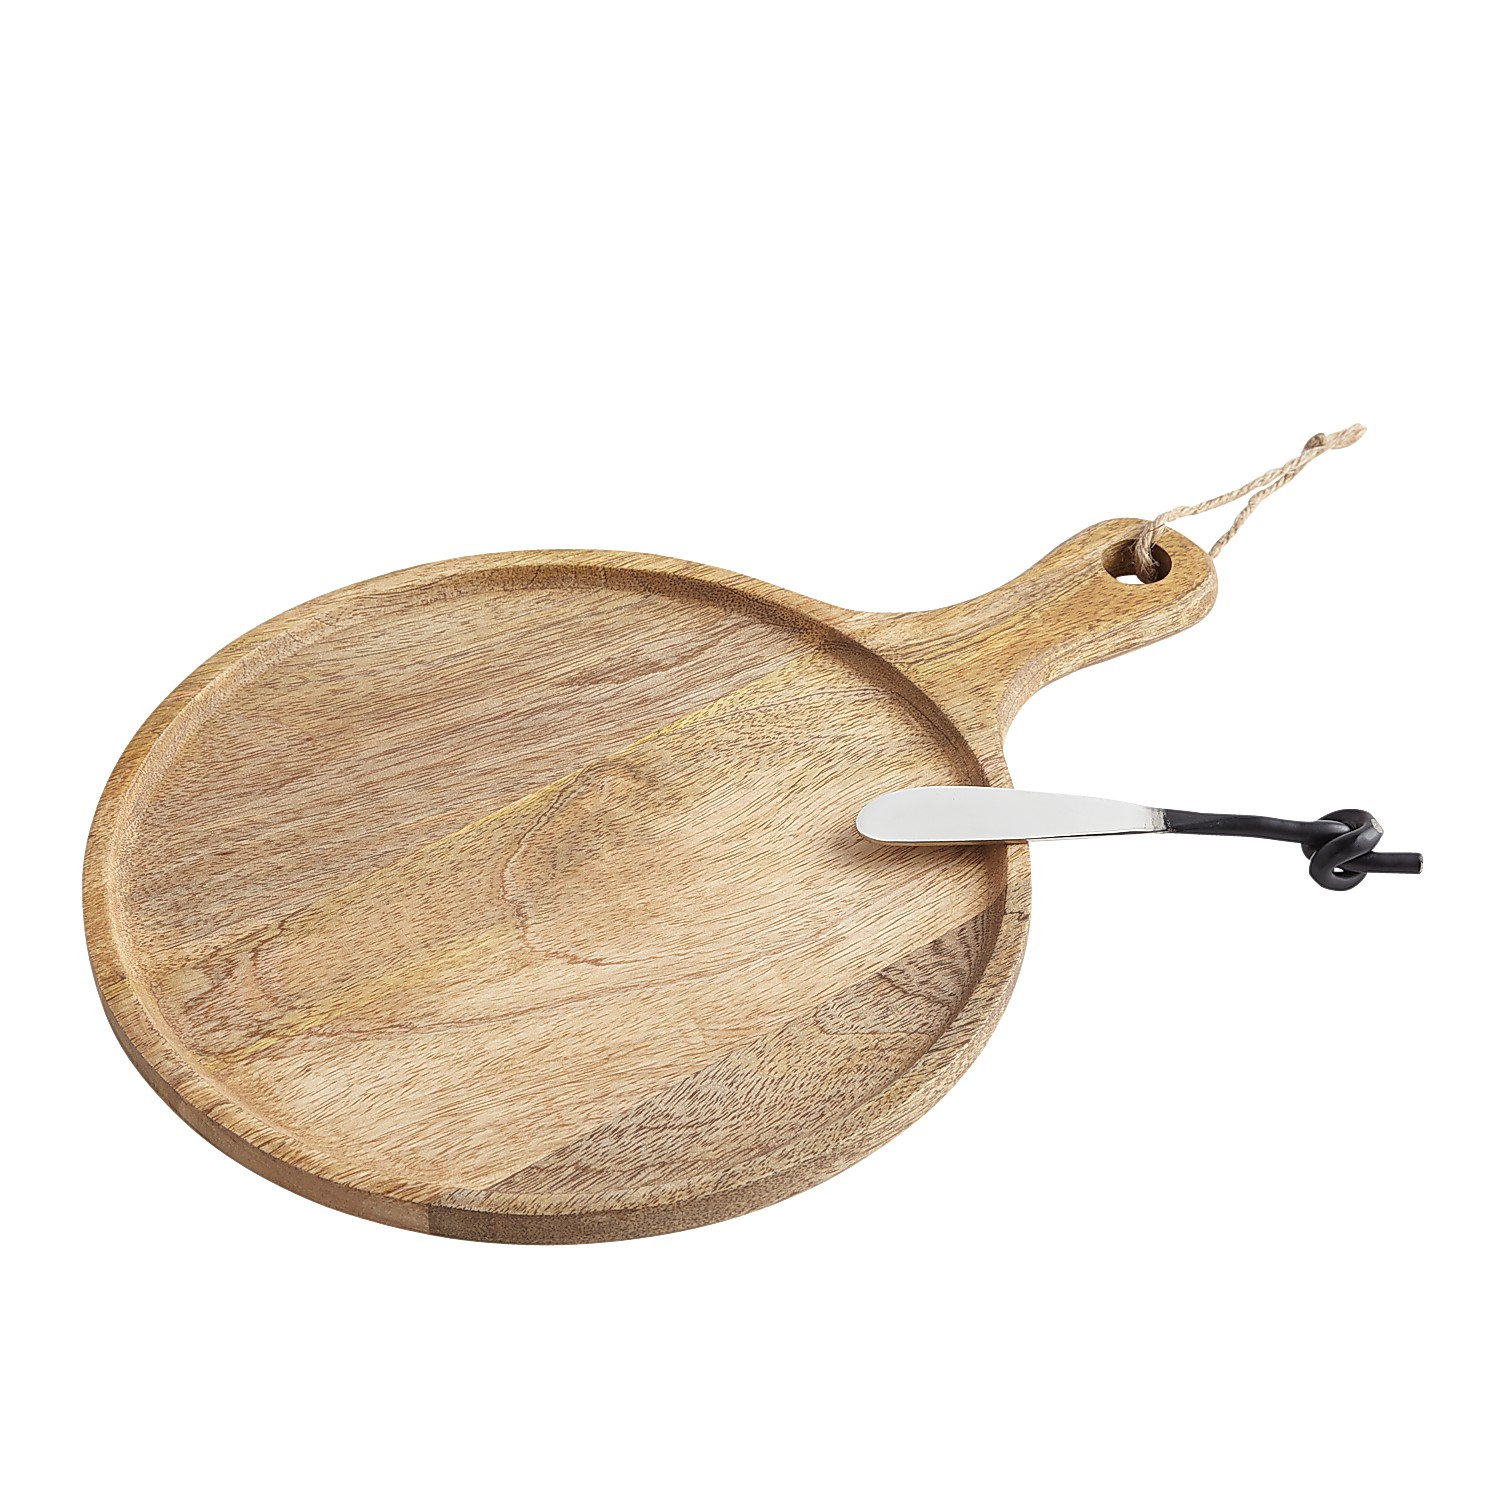 Wooden Cheese Board With Spreader